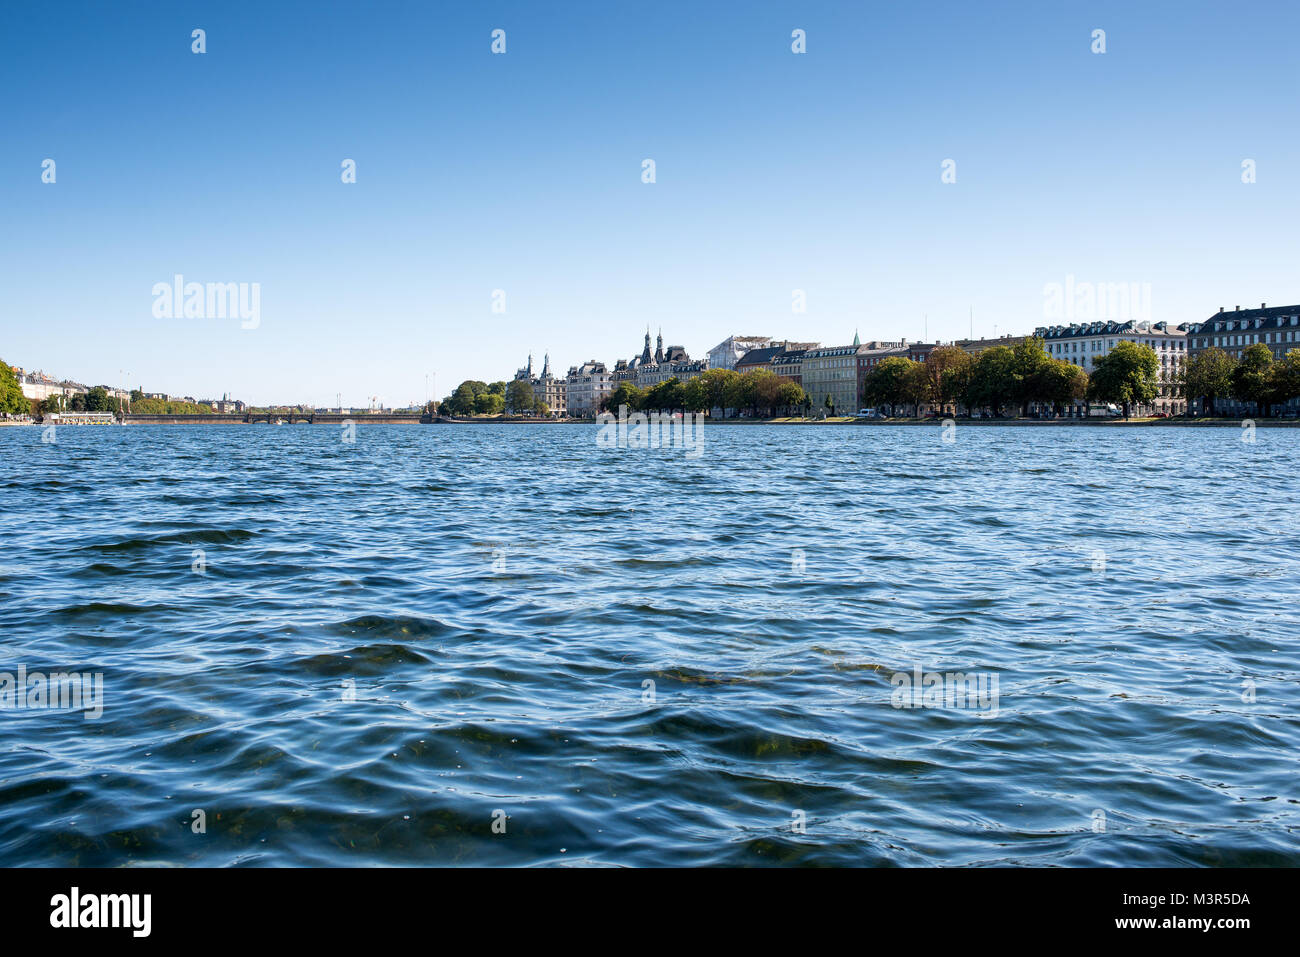 Peblinge Sø (lake) in Copenhagen as seen from the water with view towards Nørrebro - Stock Image